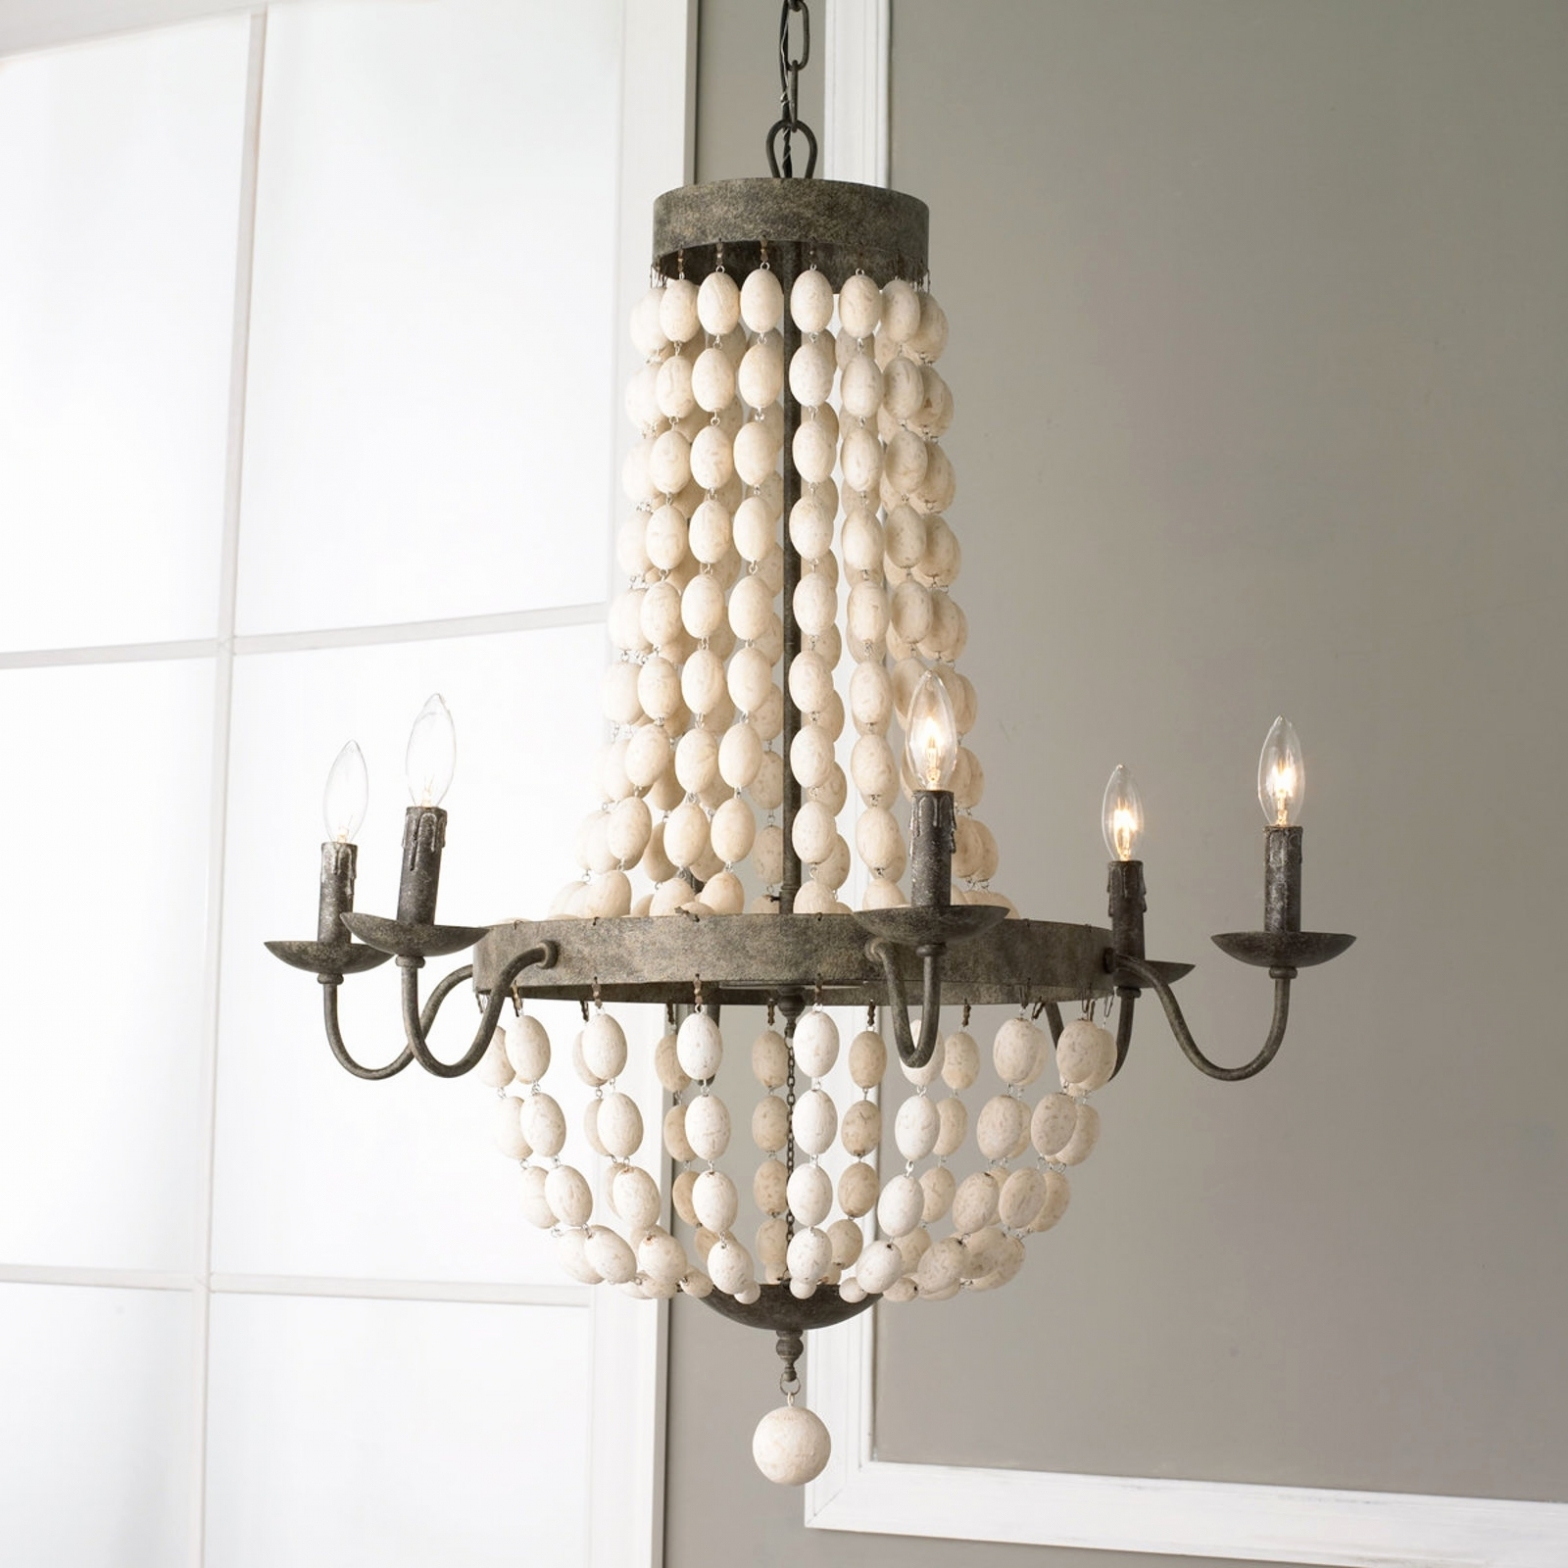 Widely Used Turquoise Wood Bead Chandeliers For Lighting ~ Chandeliers ~ Turquoise Beaded Chandelier Light Fixture (View 8 of 15)